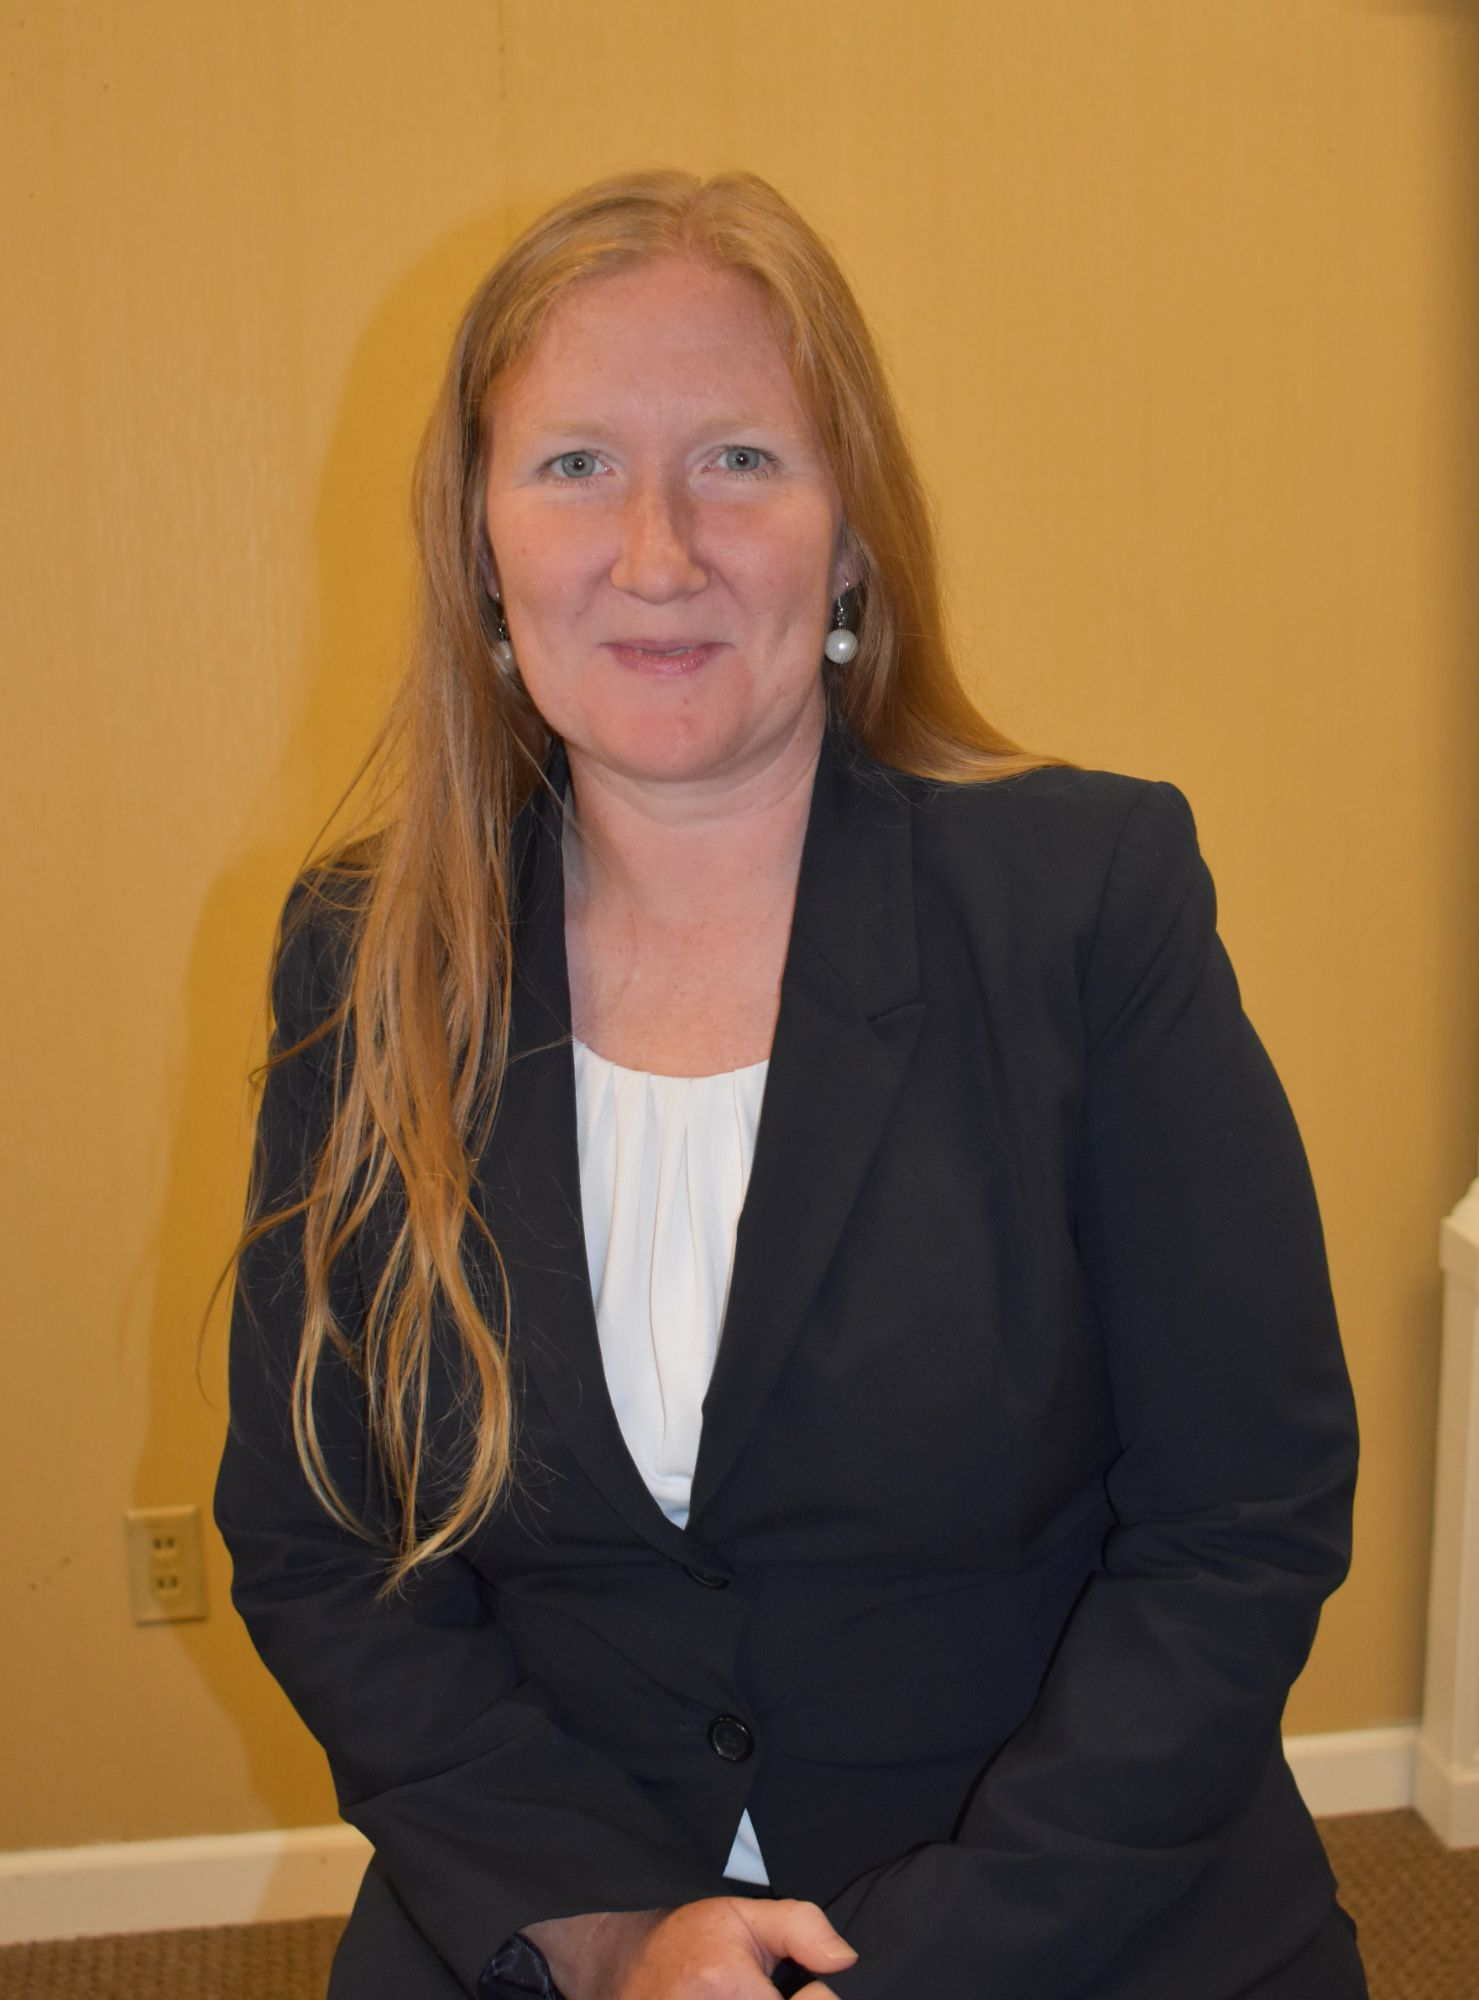 Photo of Jacque Sobotka - Office Manager